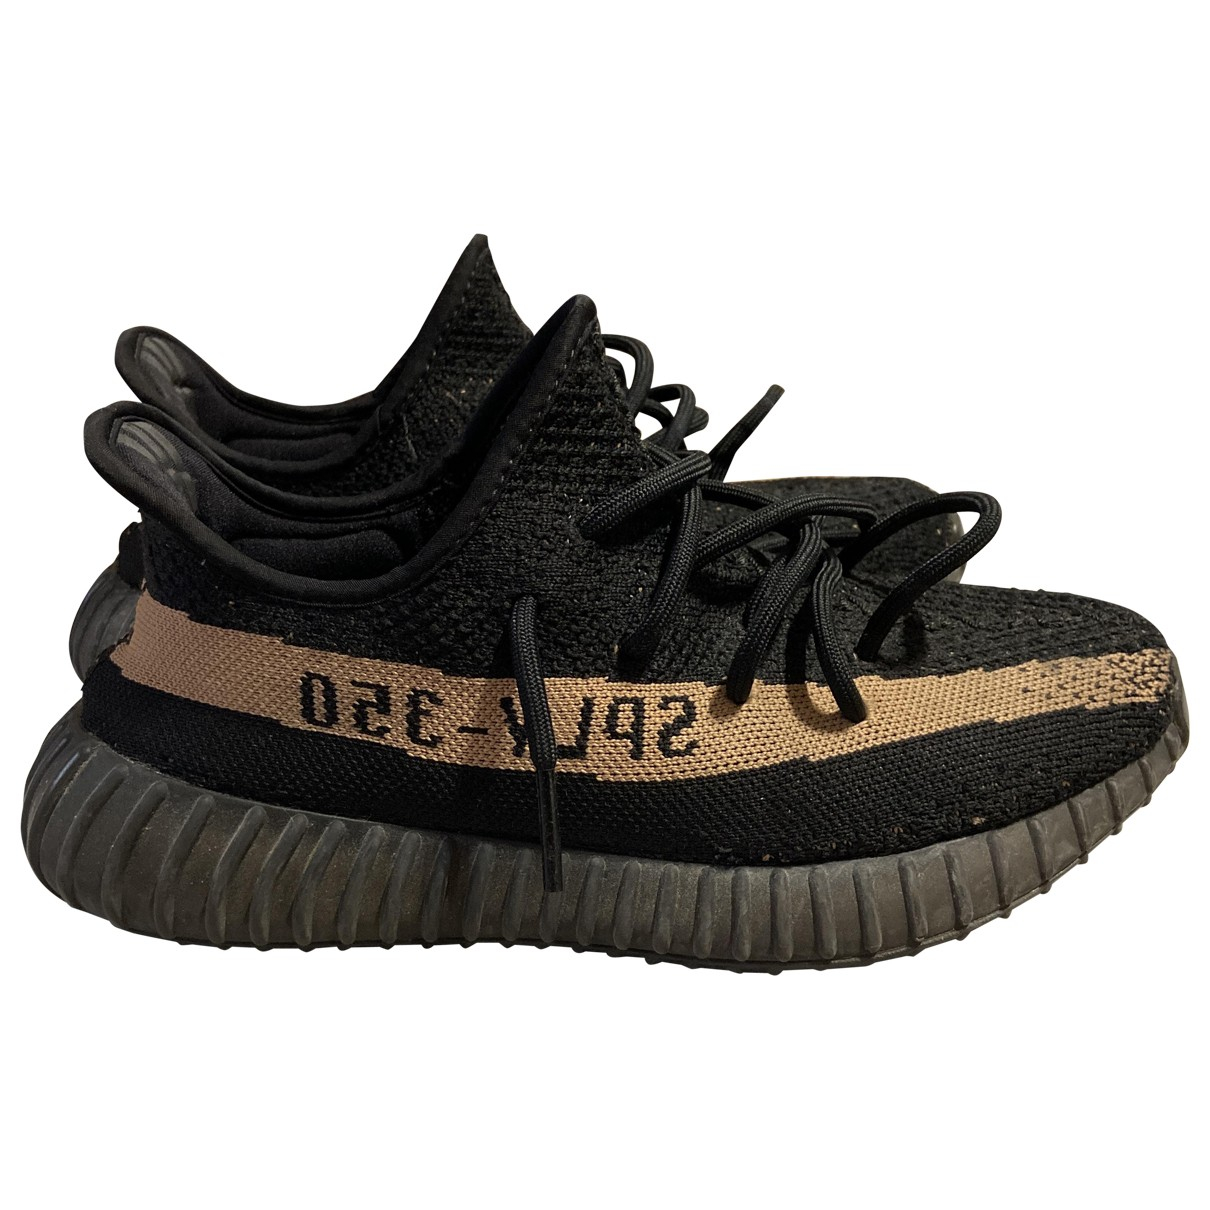 Yeezy X Adidas Boost 350 V2 Sneakers in  Schwarz Polyester